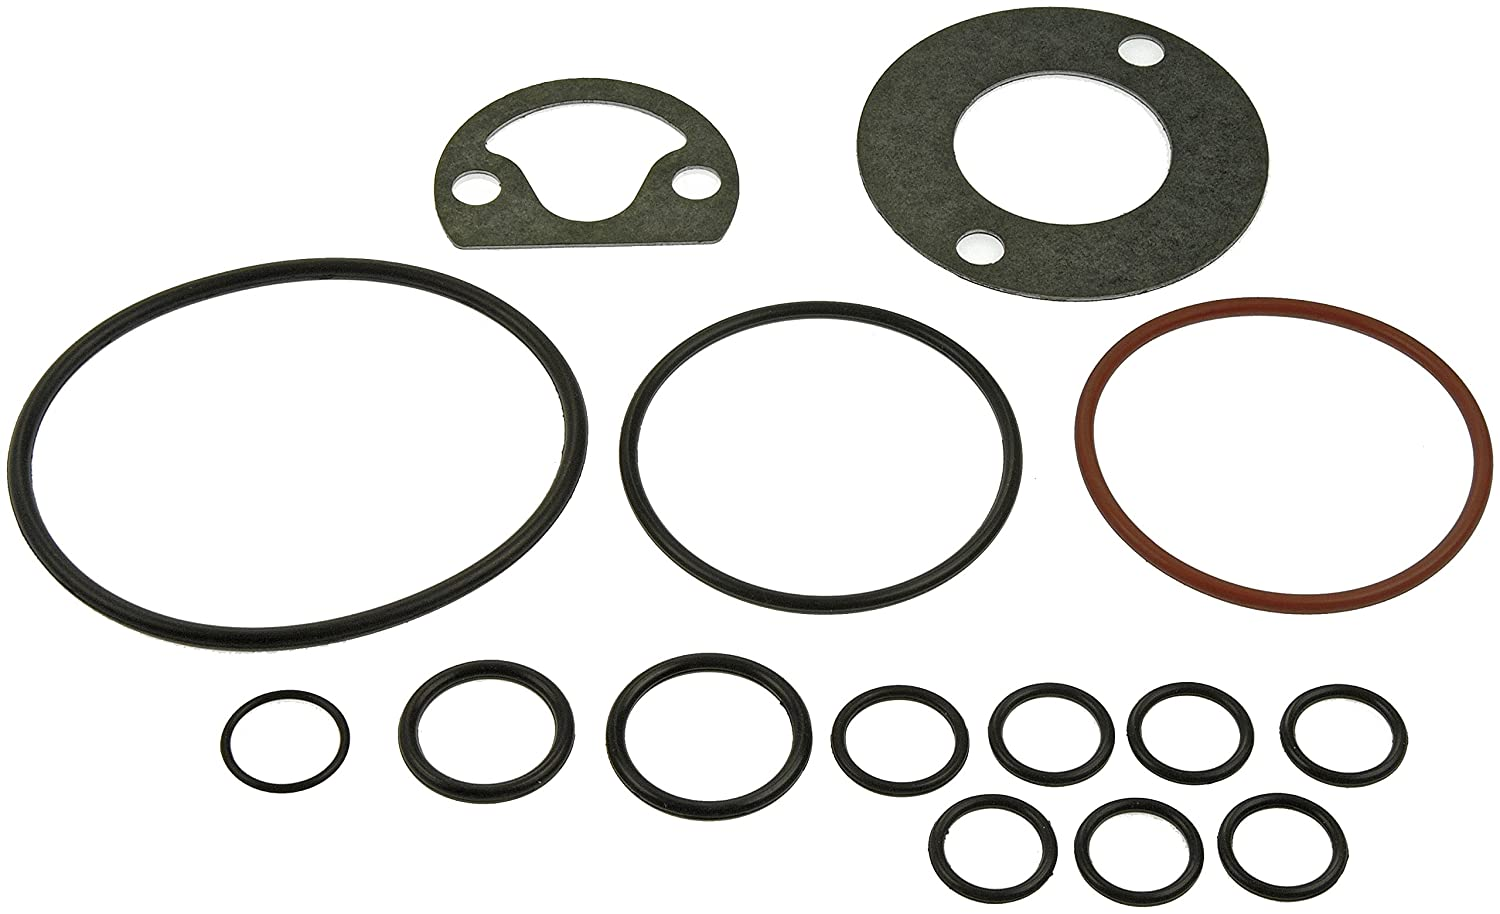 Dorman 82560 Oil Adapter and Cooler Gasket Assortment, 15 Piece Dorman - HELP